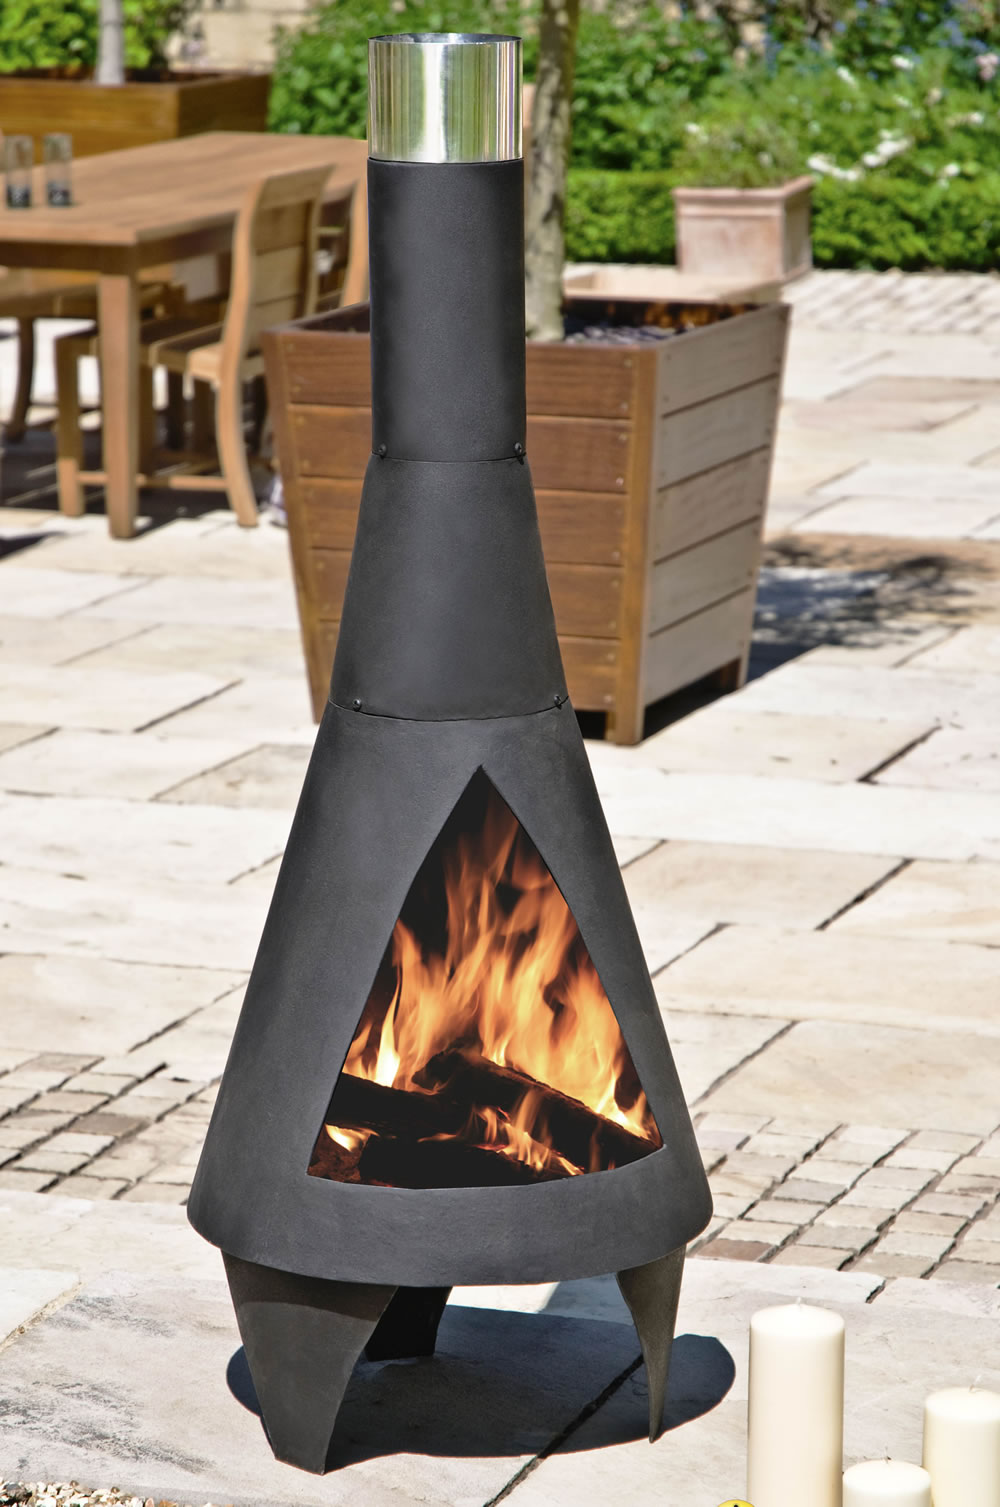 Wonderful Chiminea Outdoor Fireplace For Patio Furniture Ideas: Clay And Cast Iron Chiminea For Traditional Outdoor Heat Ideas